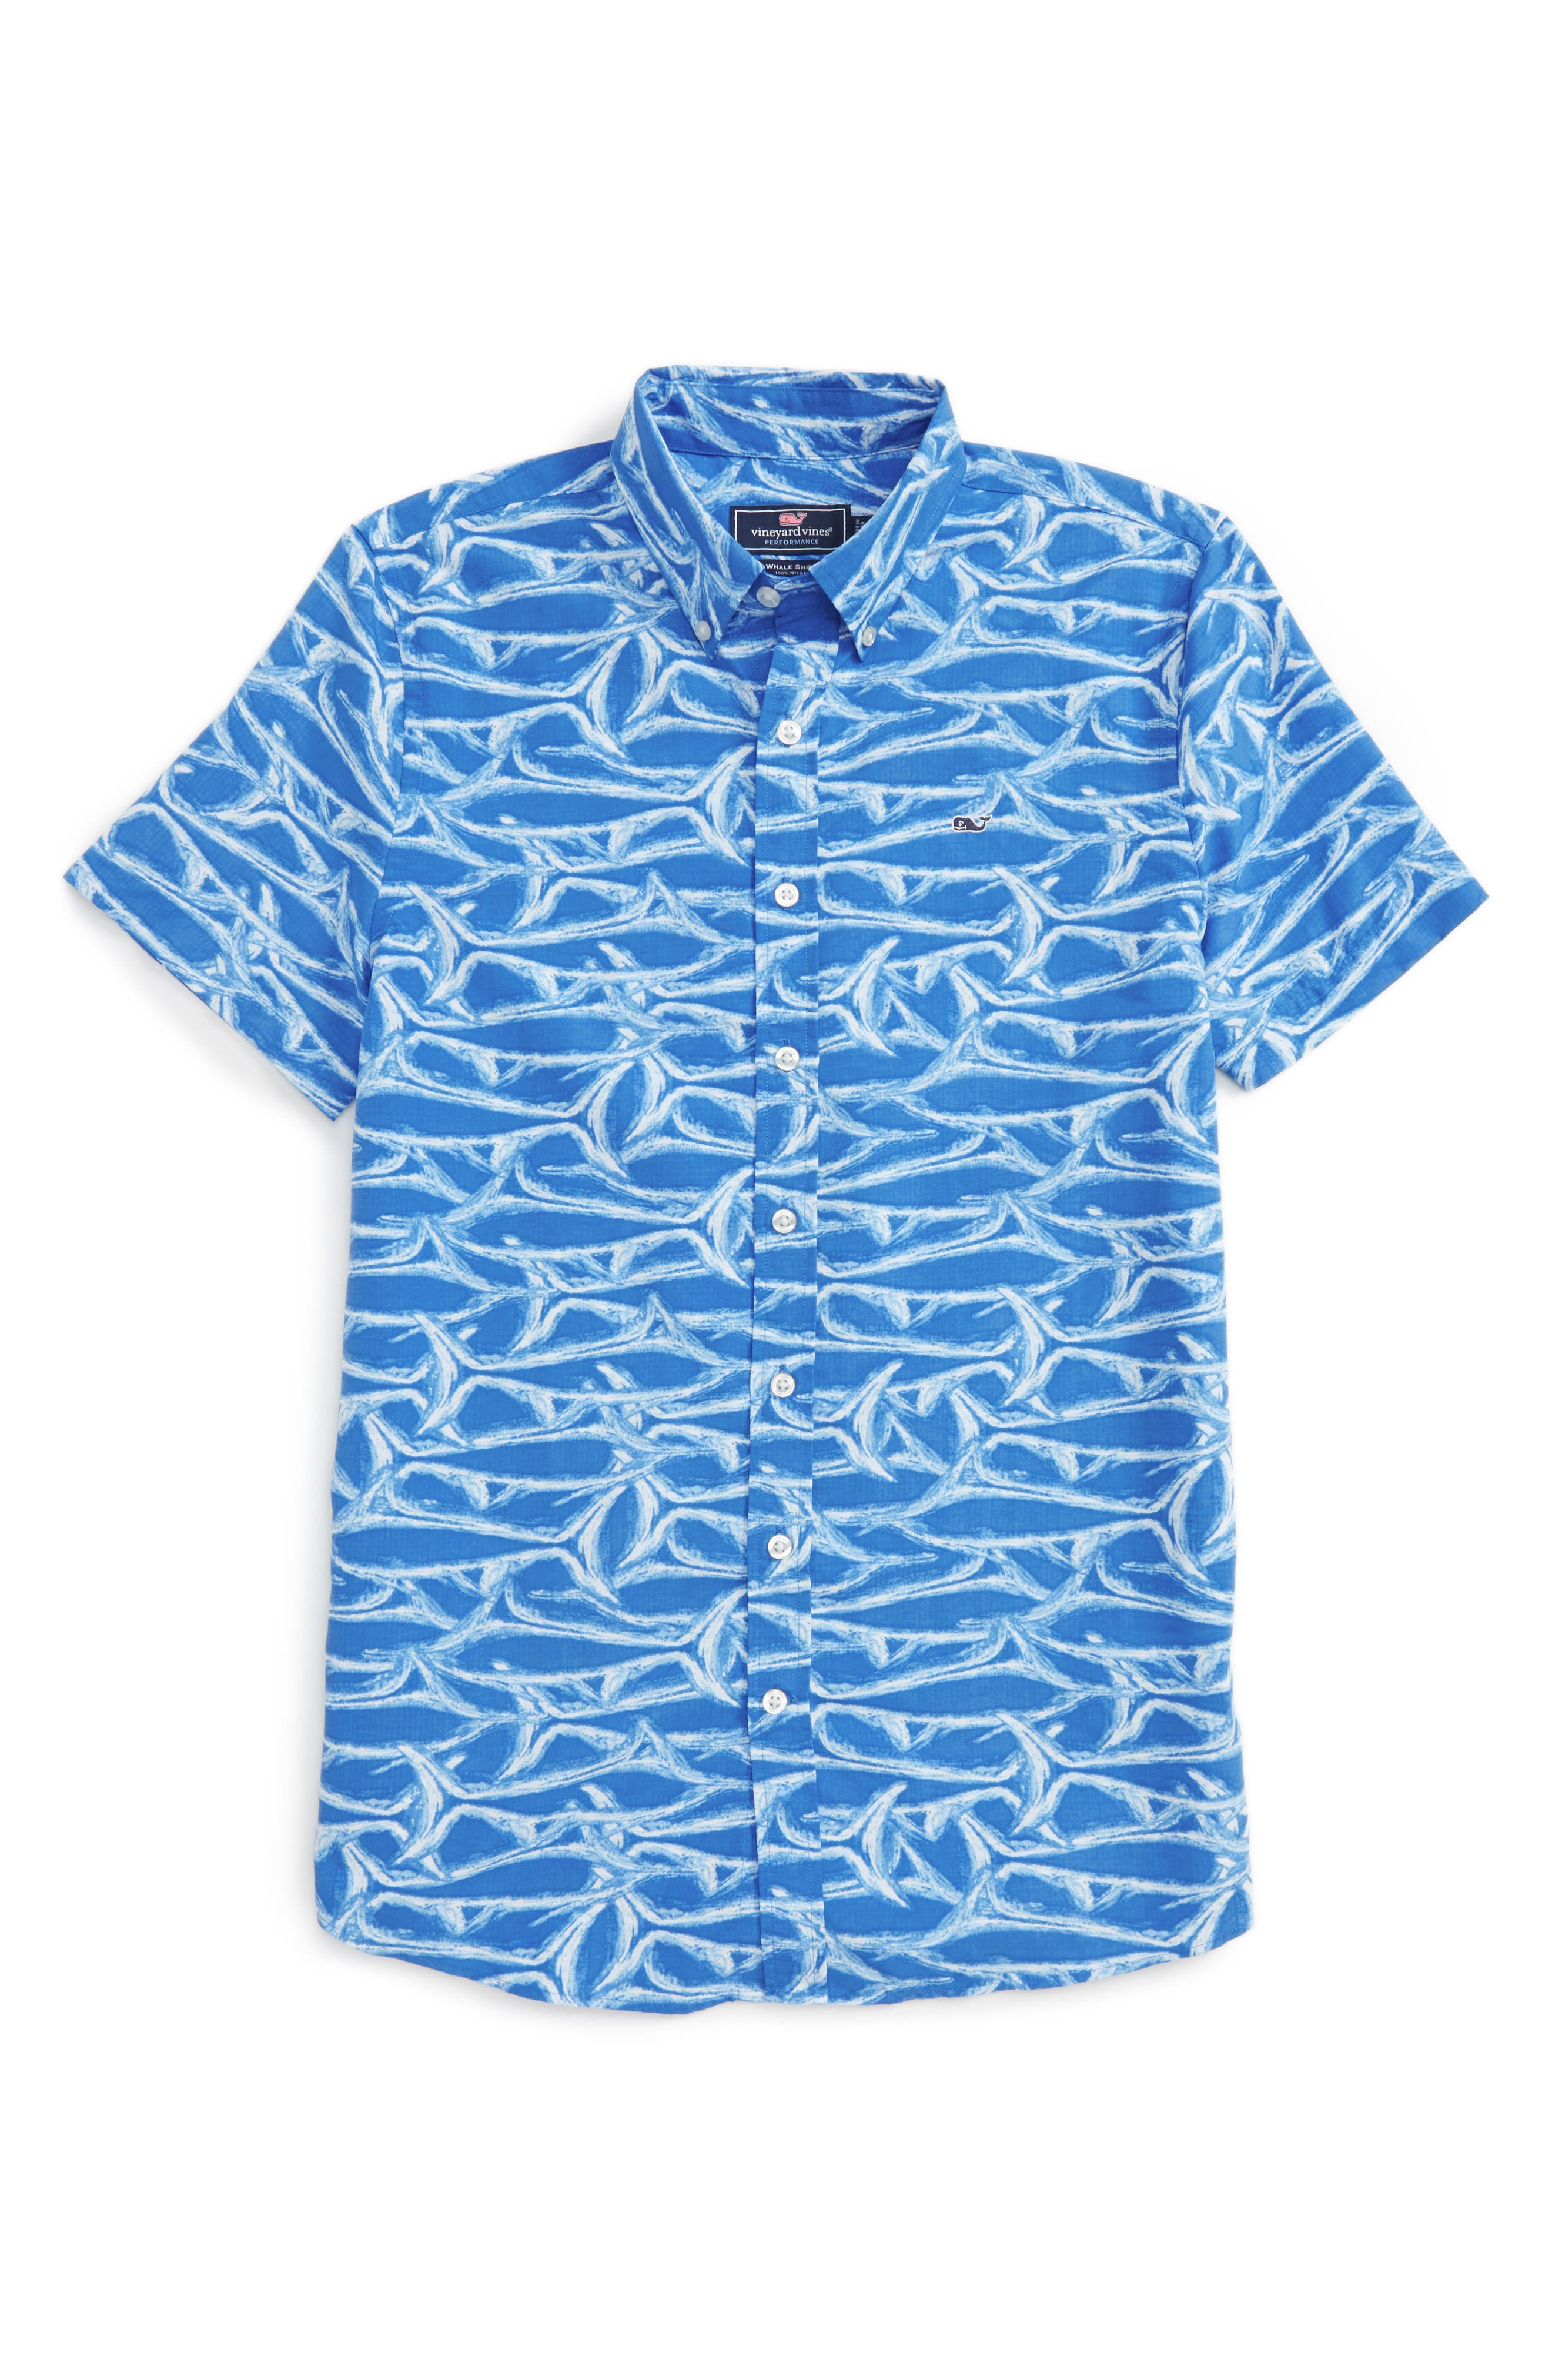 Brushed Marlin Whale Shirt,                         Main,                         color, Hull Blue